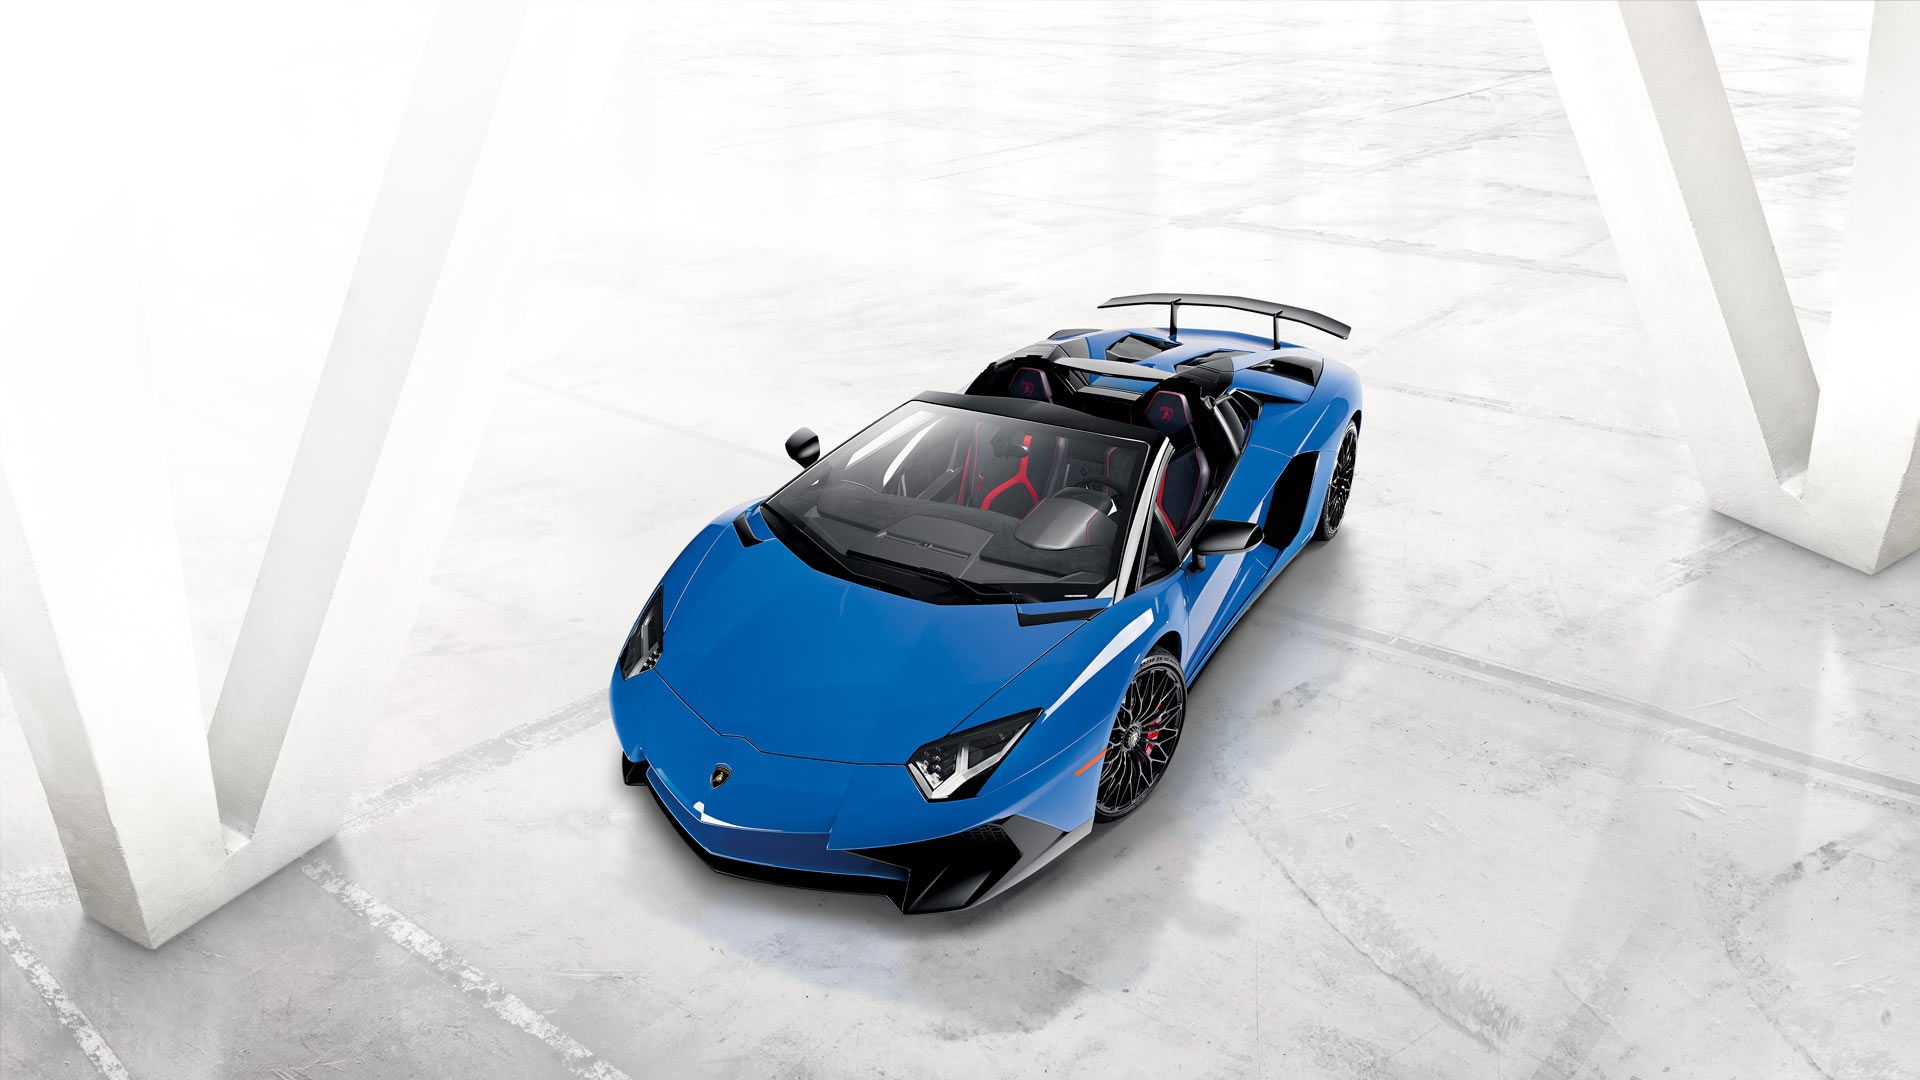 New 2016 Lamborghini Aventador Lp 750 4 Superveloce Roadster For